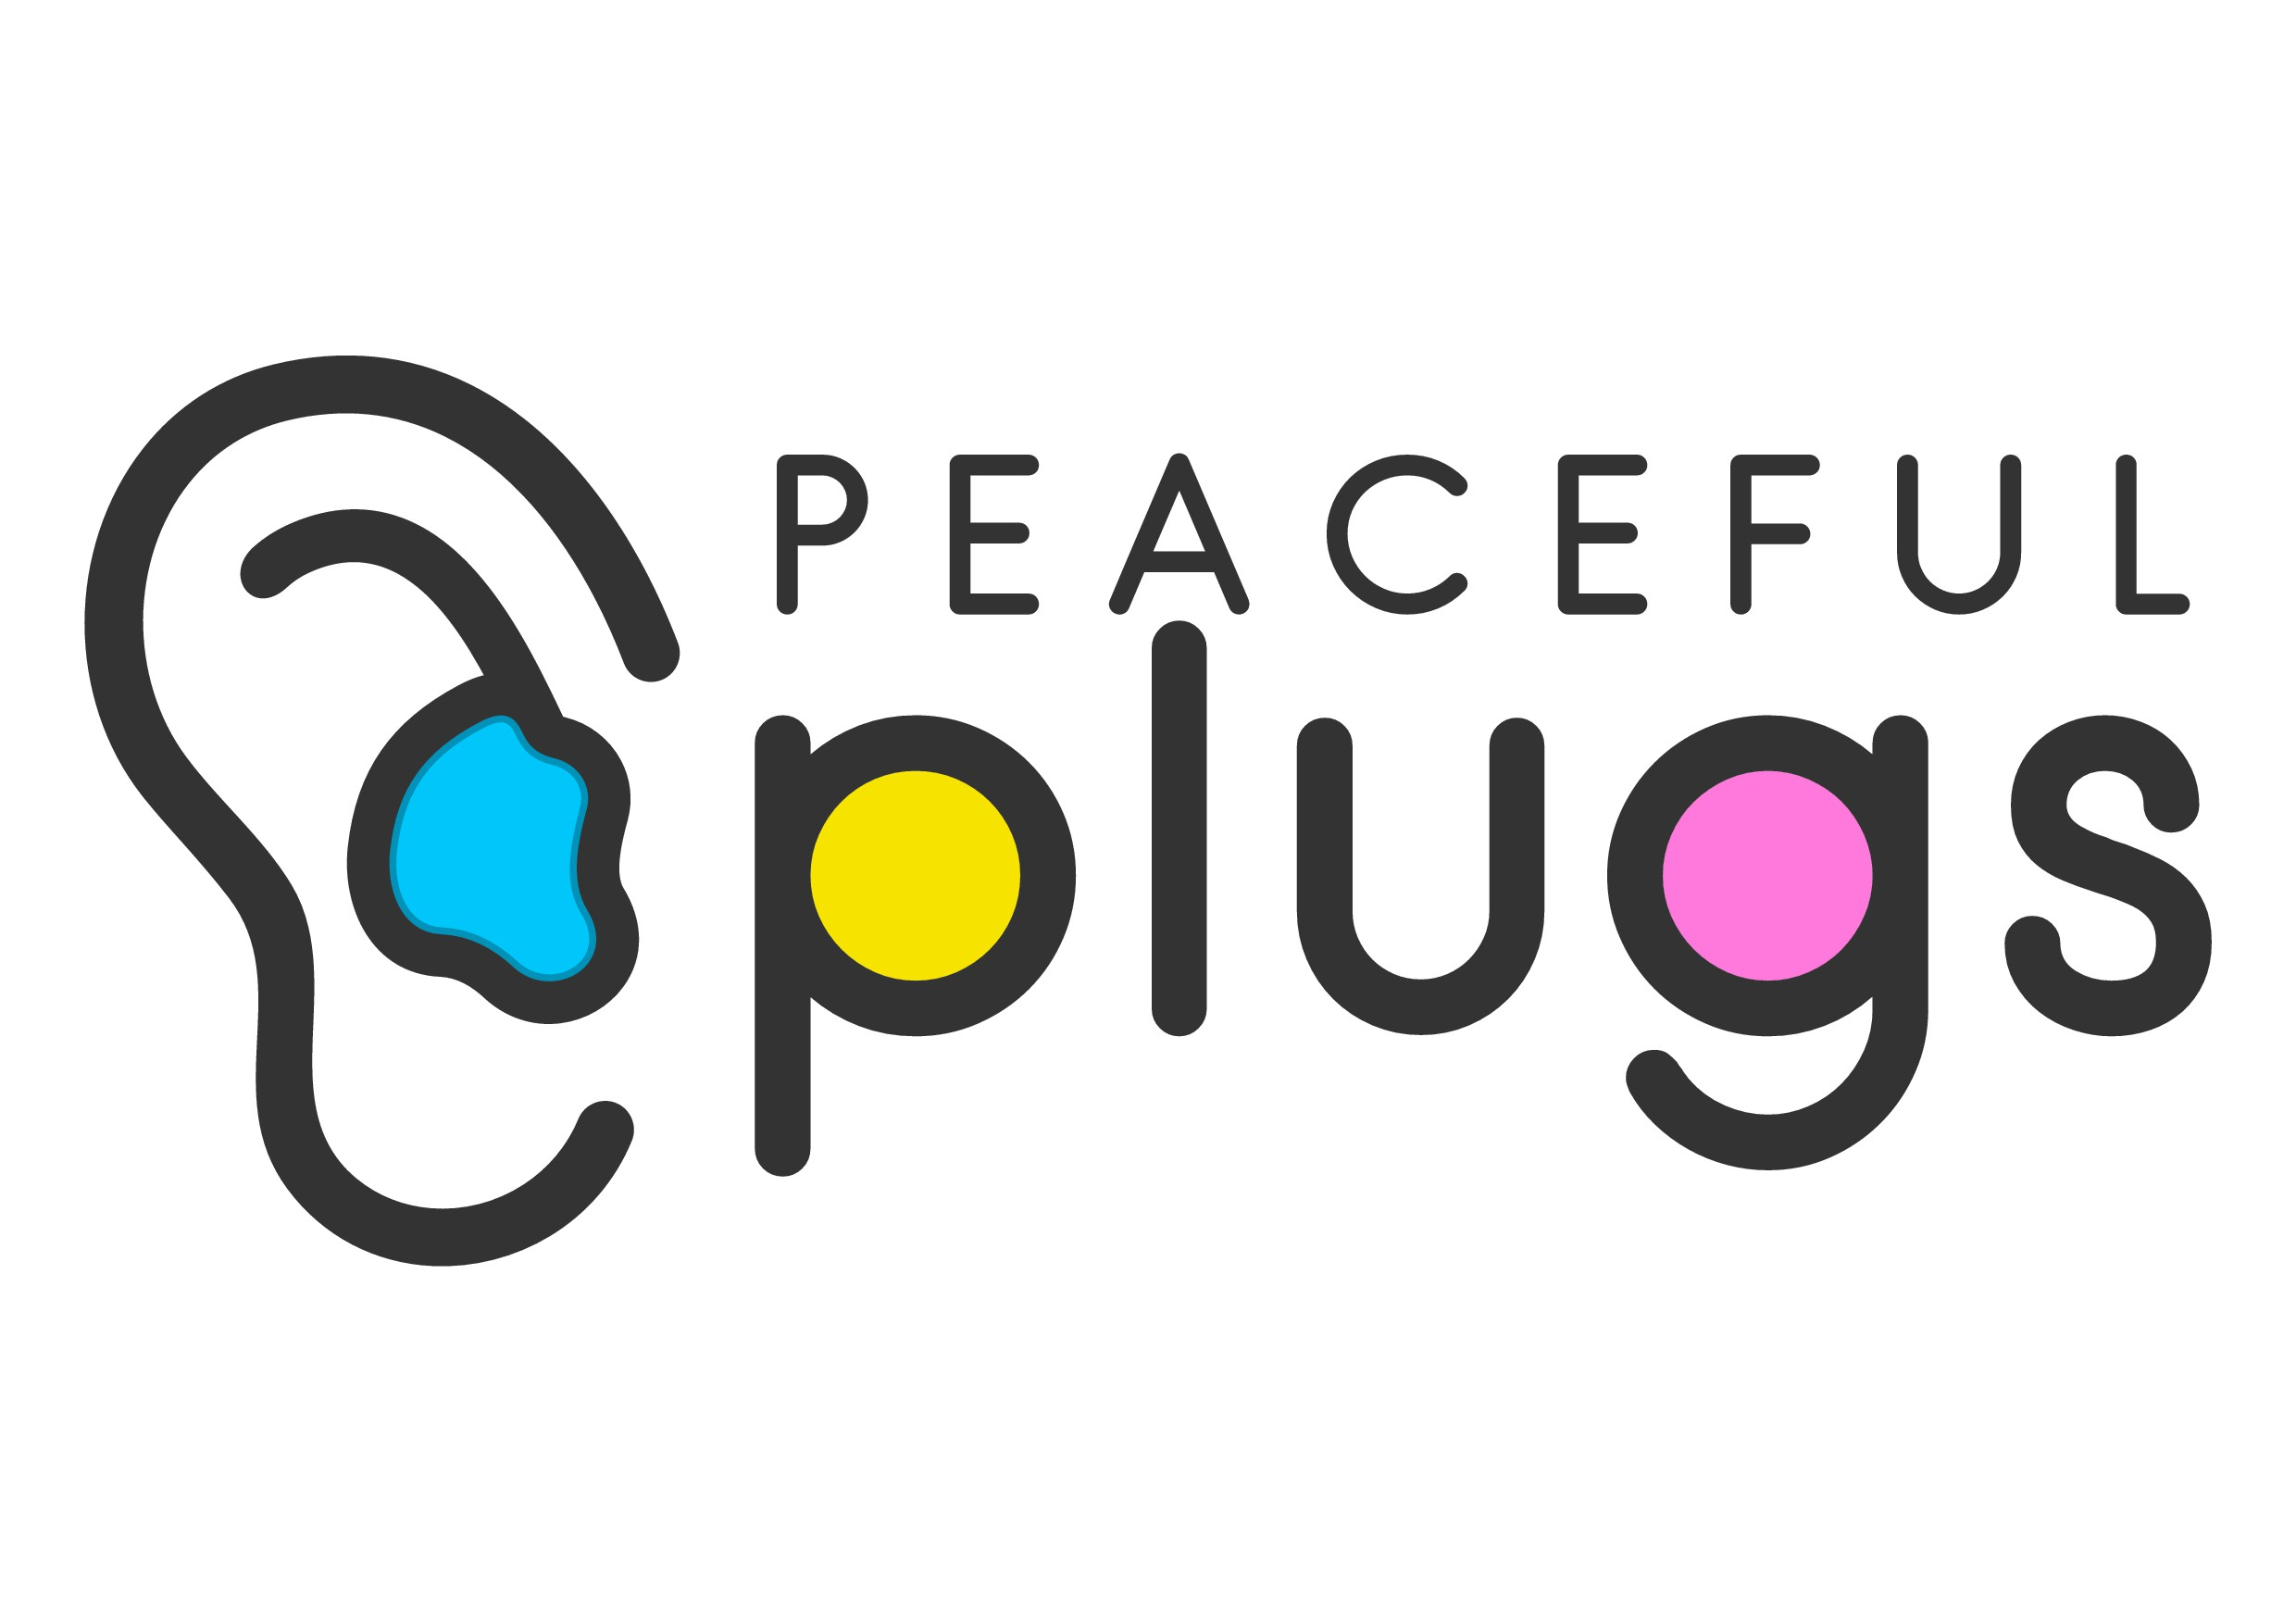 Playful, colorful logo: Either an Illustrative Ear or Unique Typography